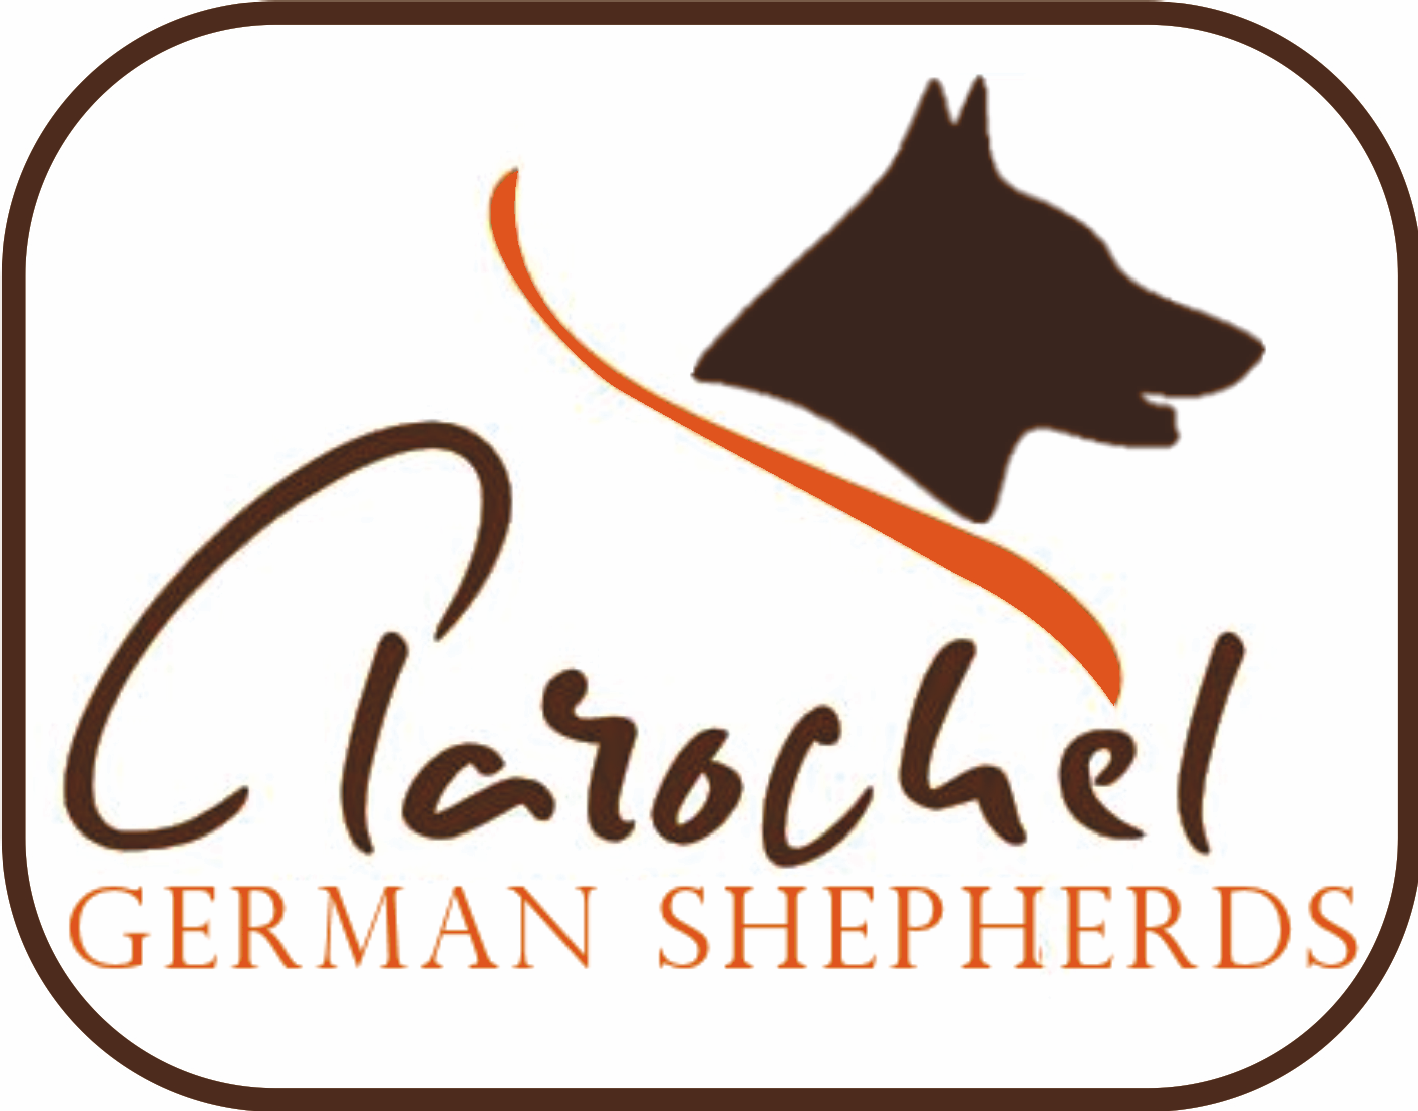 Clarochel German Shepherds